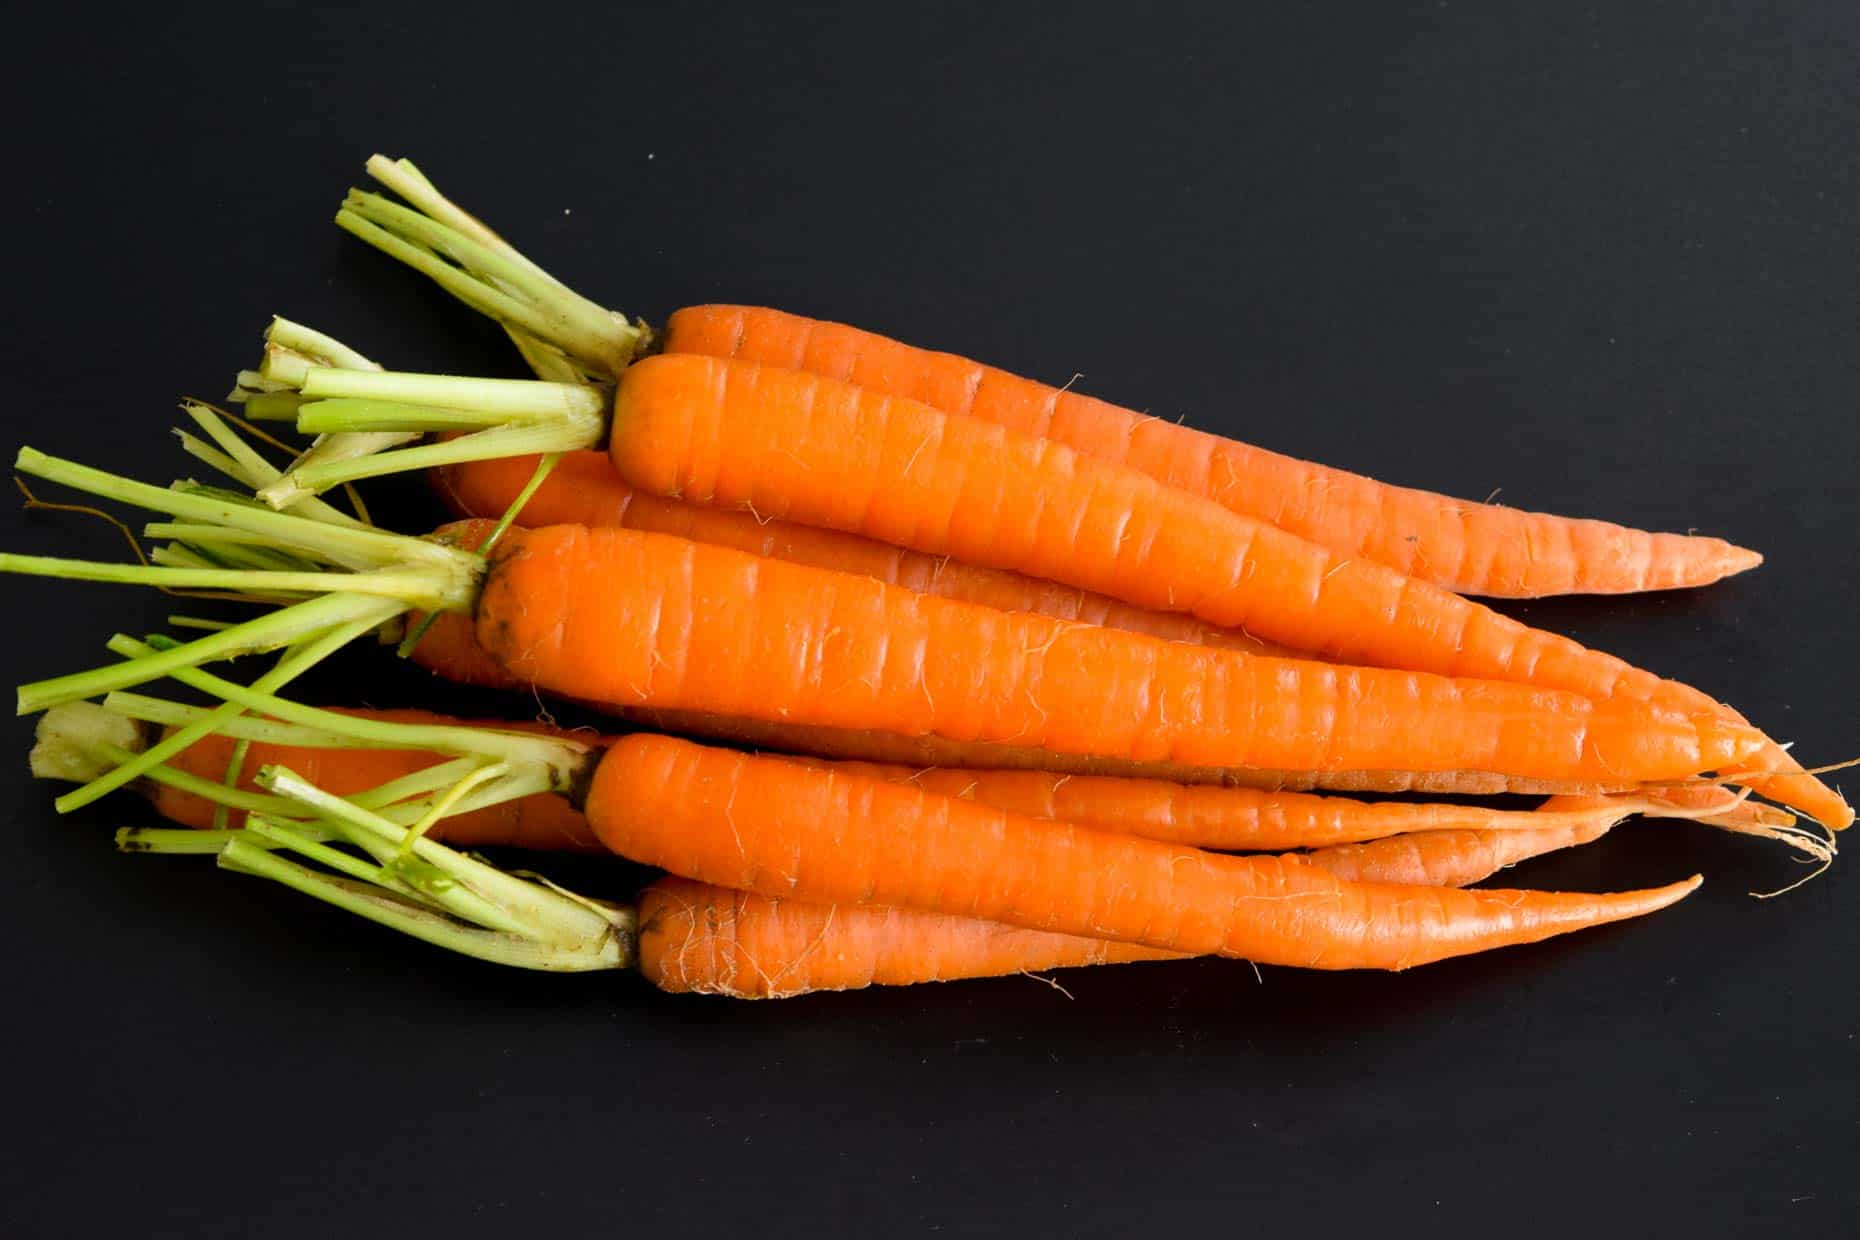 Carrots on black background